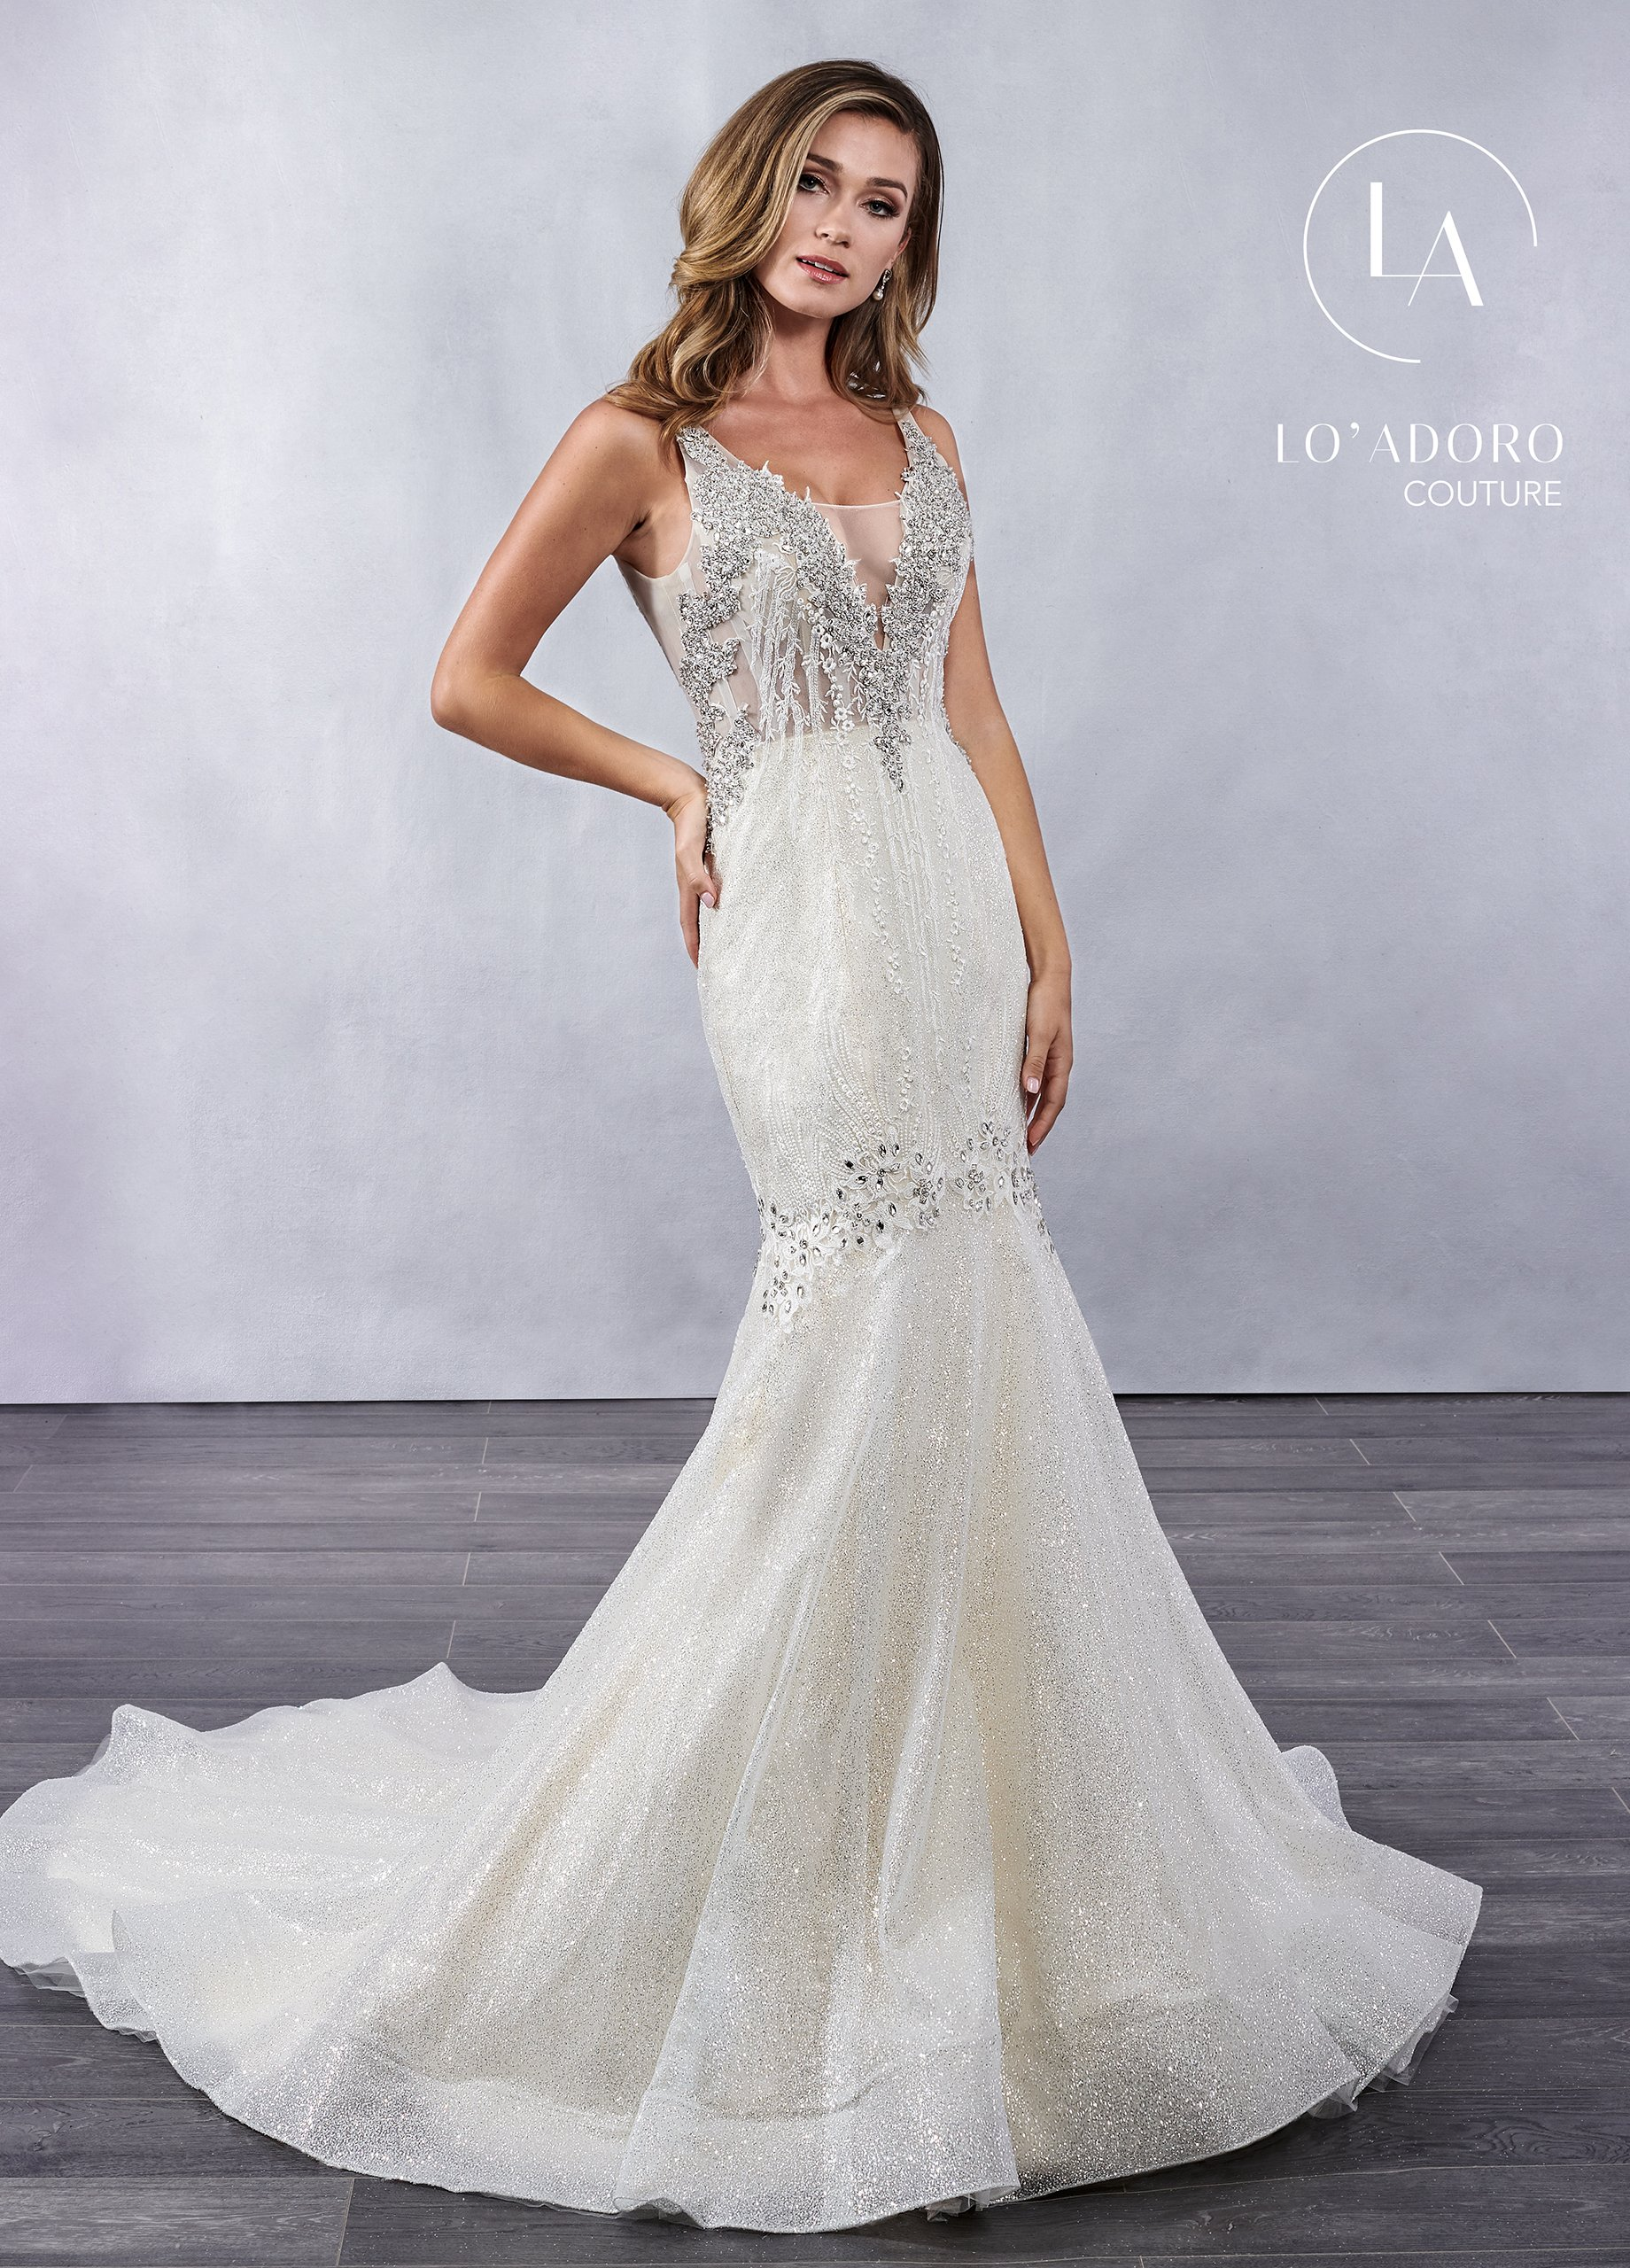 V-Neck Mermaid Lo' Adoro Couture BRIDAL in White Color